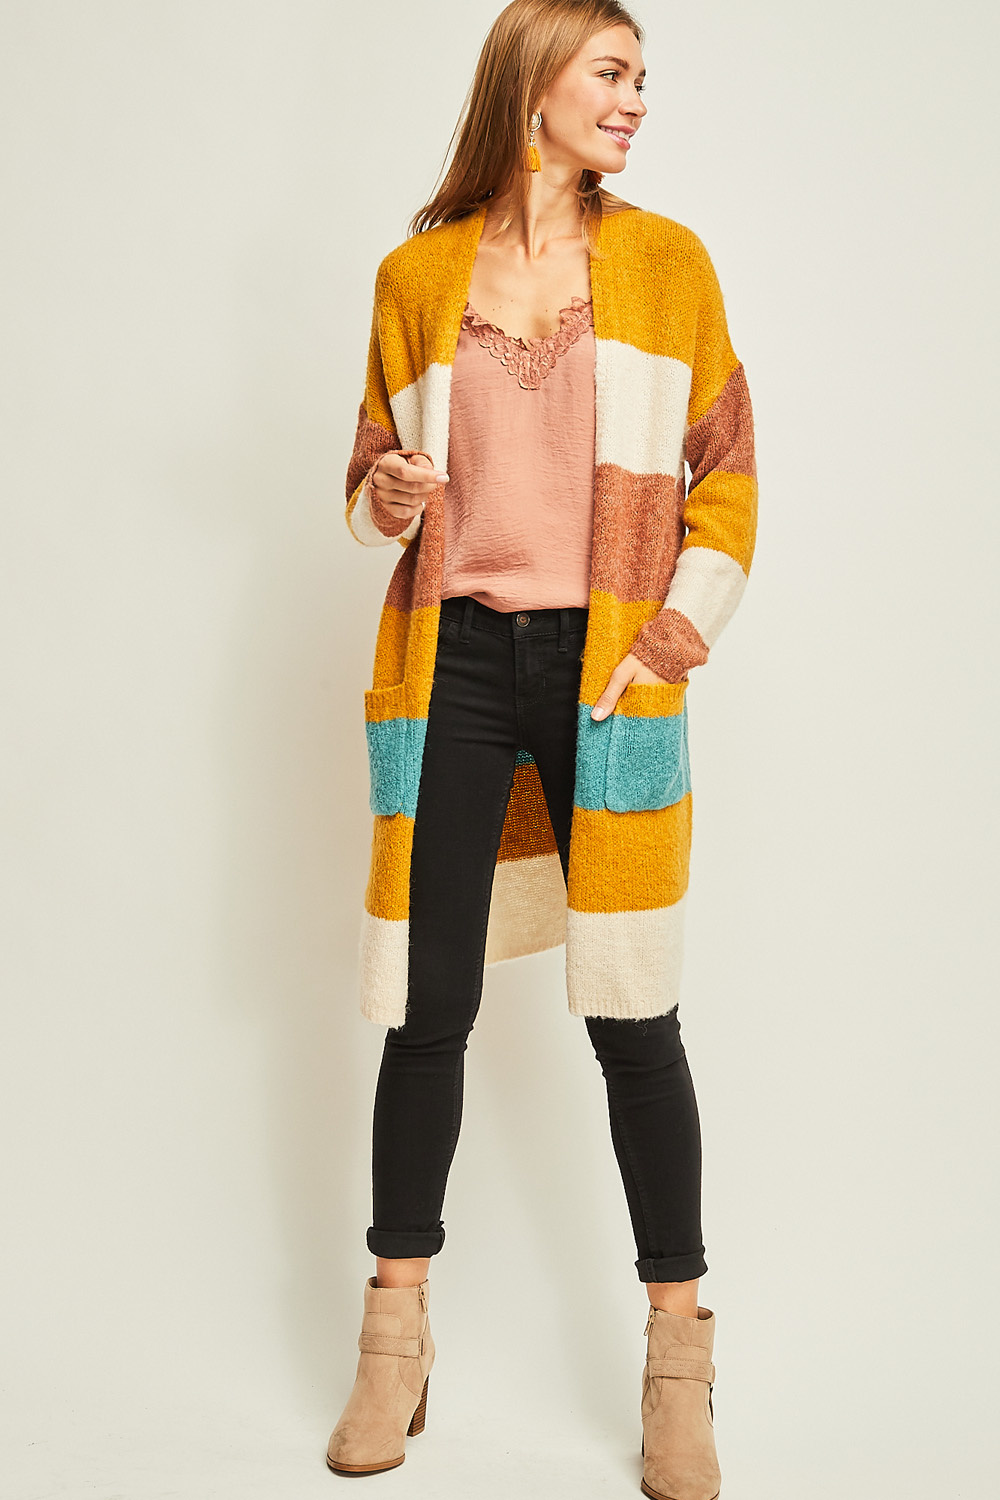 Entro Inc Sweater Cardigan